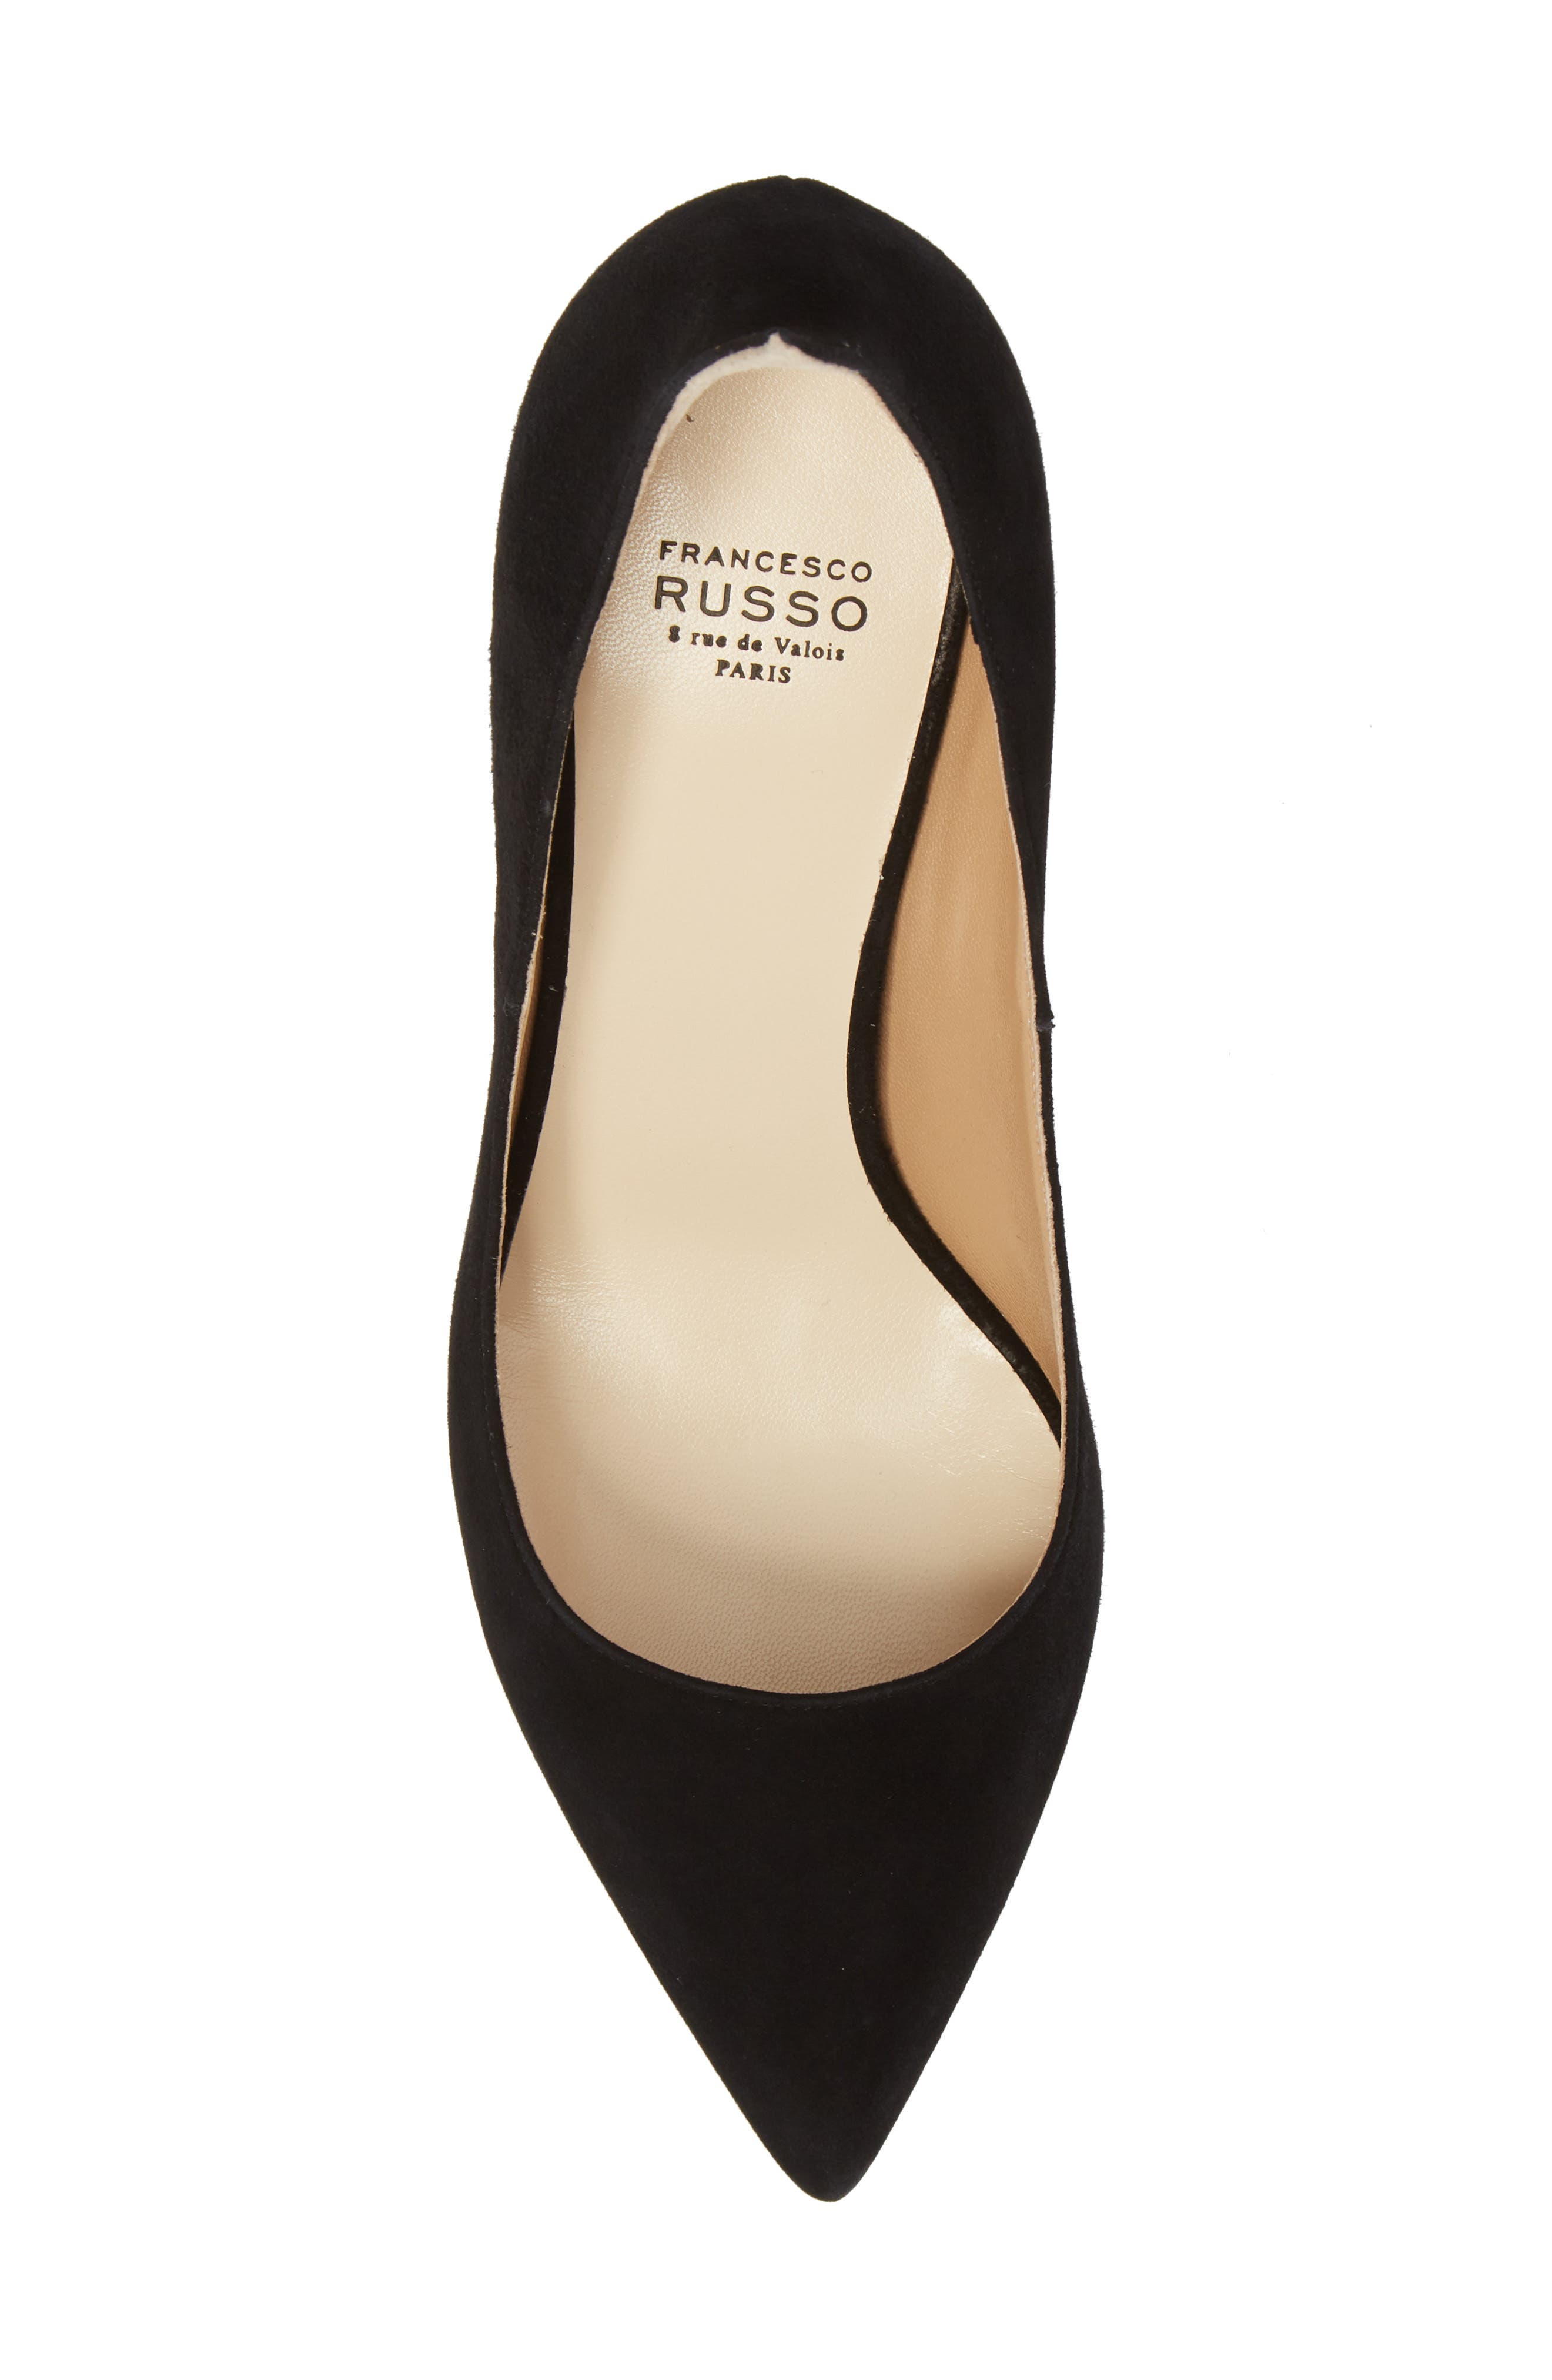 FRANCESCO RUSSO, Flame Pointy Toe Pump, Alternate thumbnail 5, color, BLACK